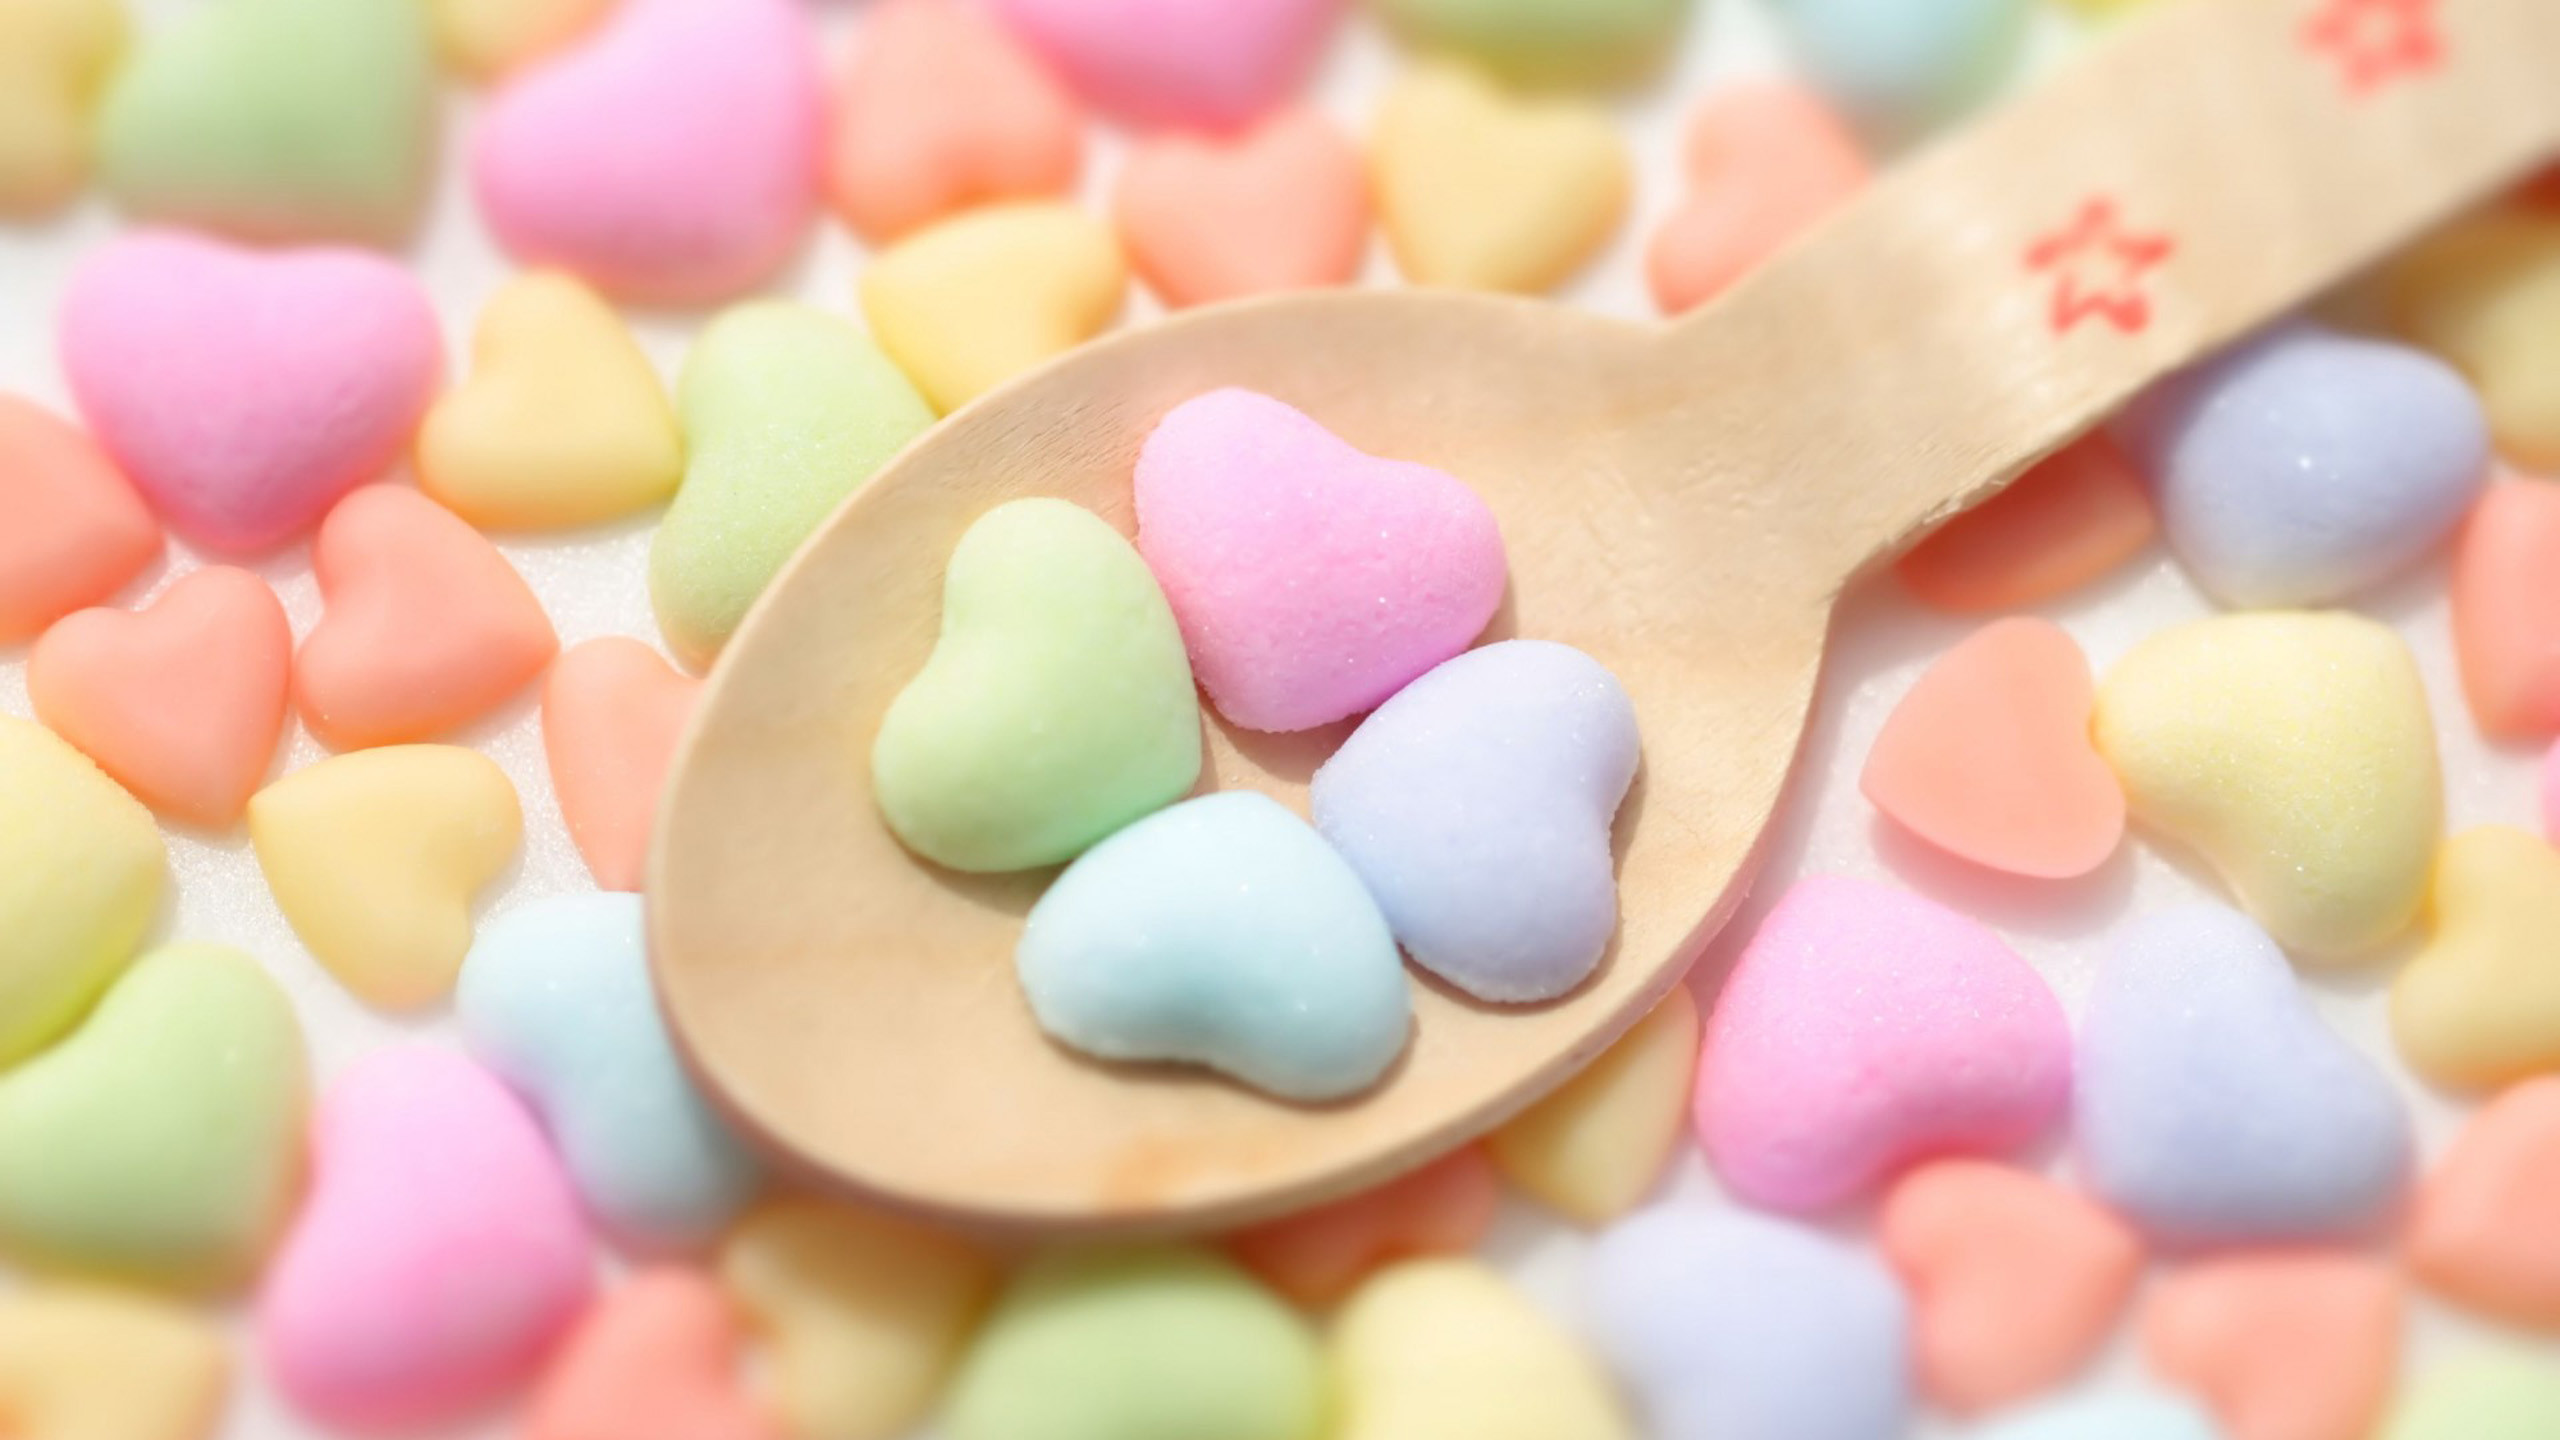 Cute Marshmallow Wallpapers 61 images